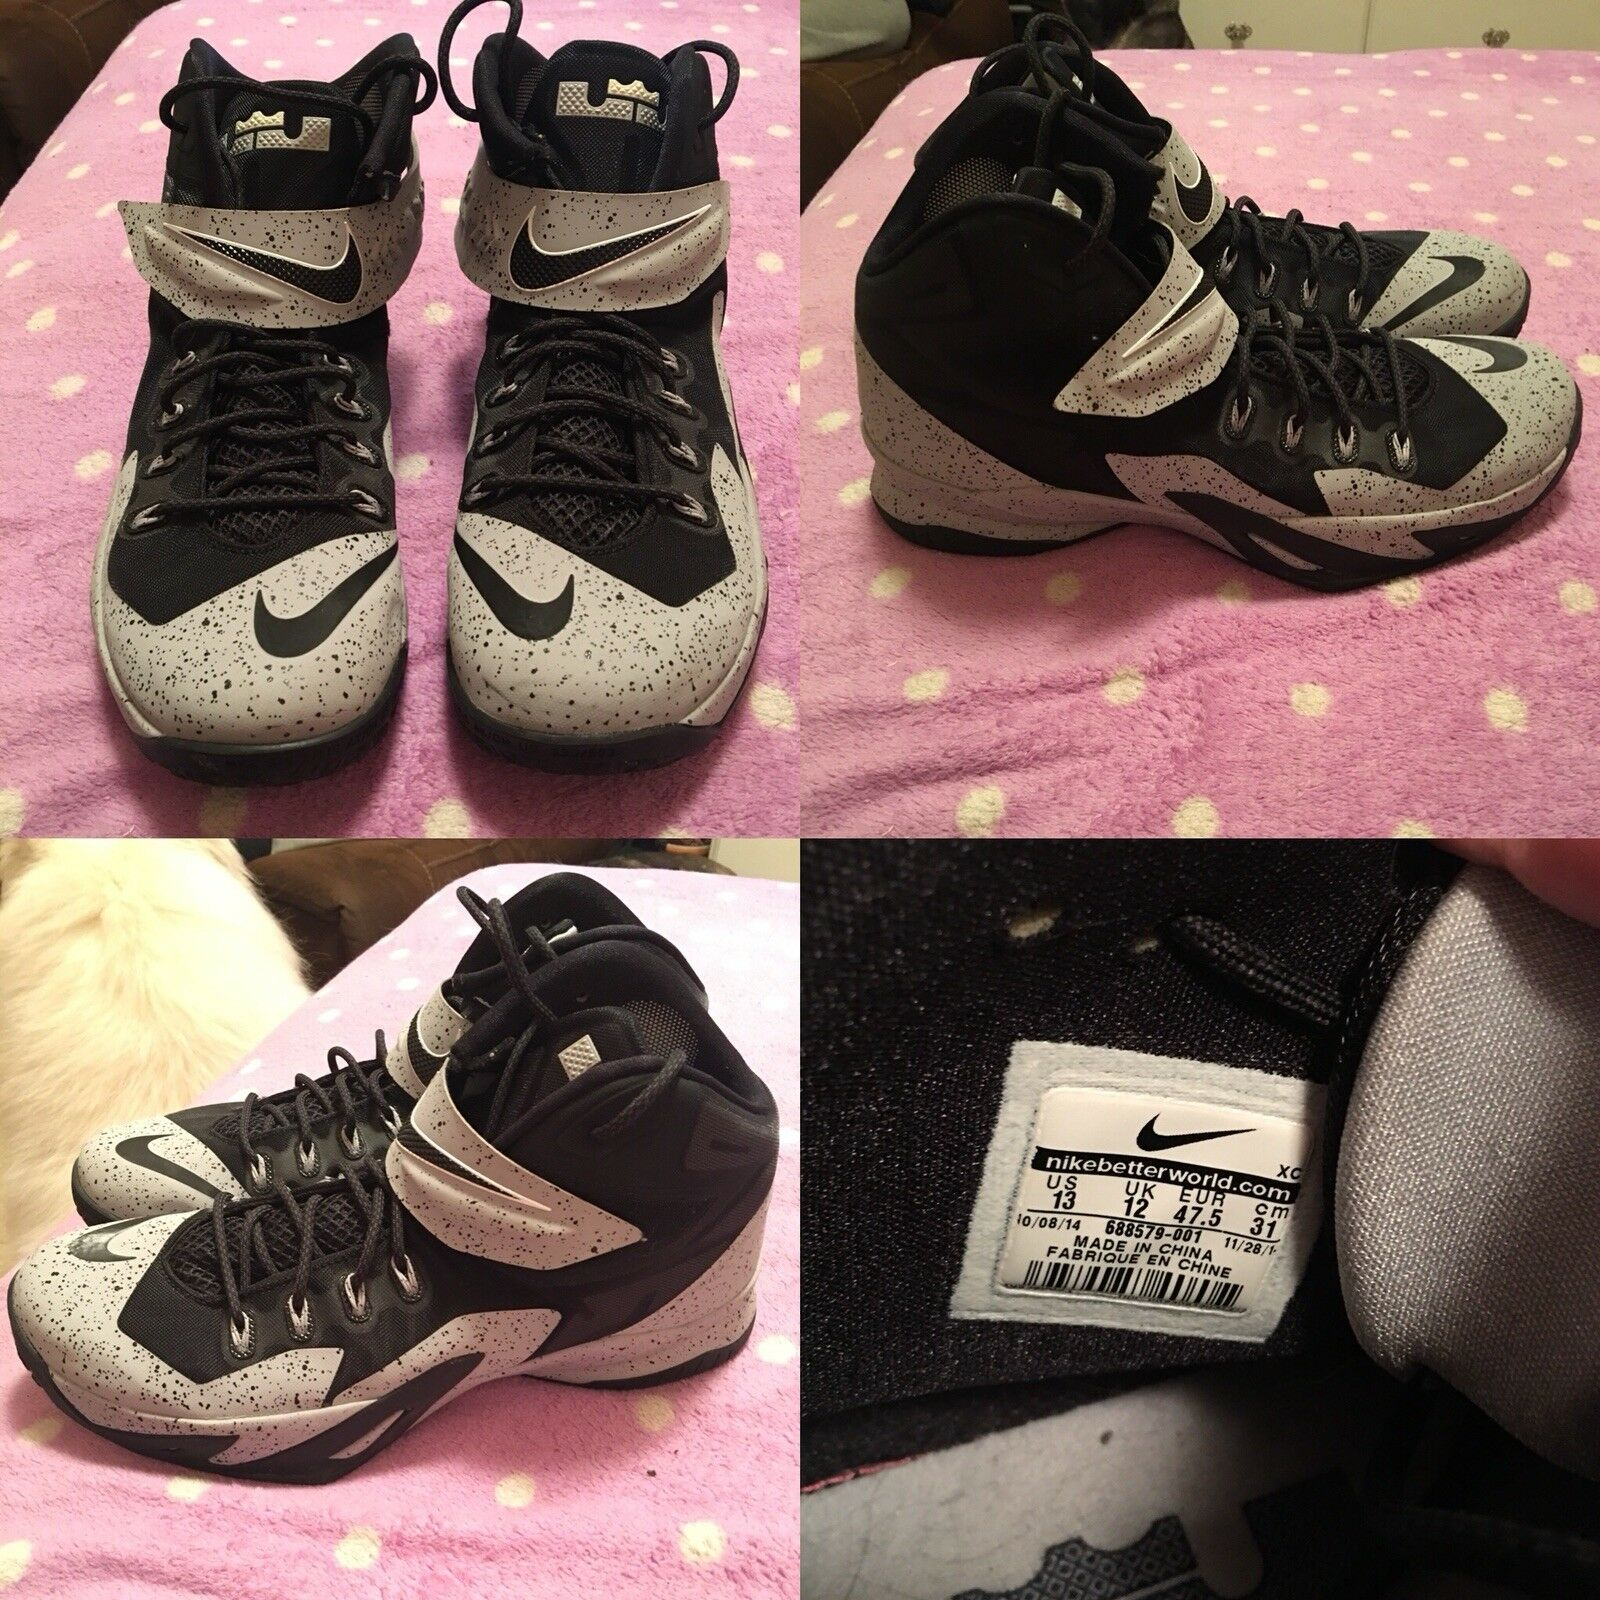 Nike Lebron James Sz 13